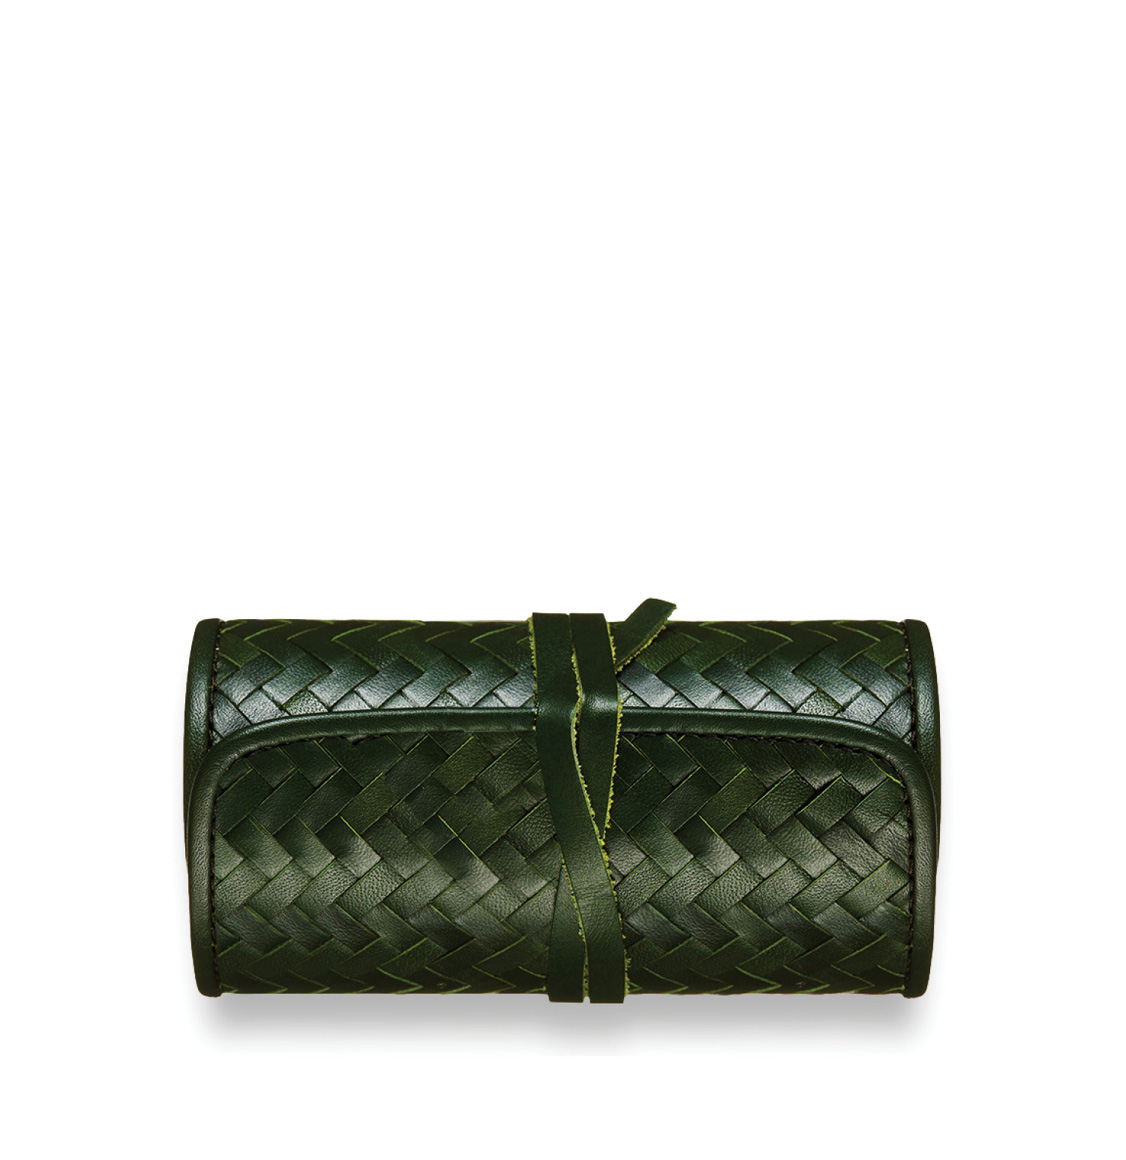 Mantidy_Herringbone_Cheese_and_Wine_Roll_Green_Leather_The_Project_Garments_A